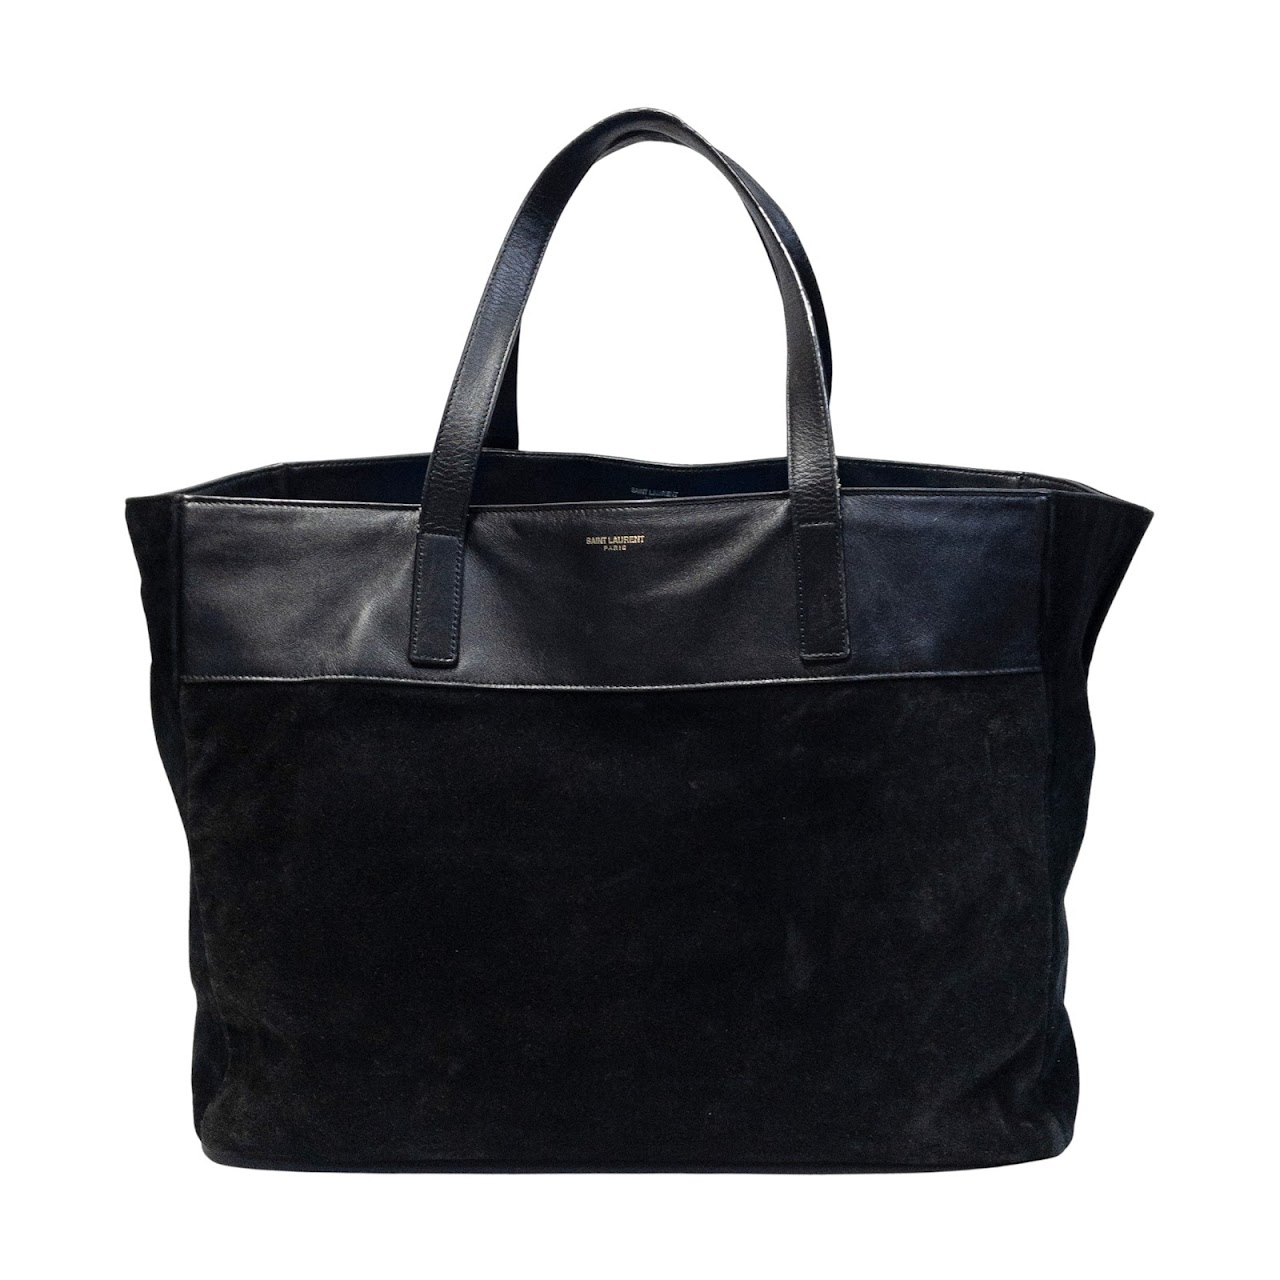 Saint Laurent Reversible Leather and Suede Tote